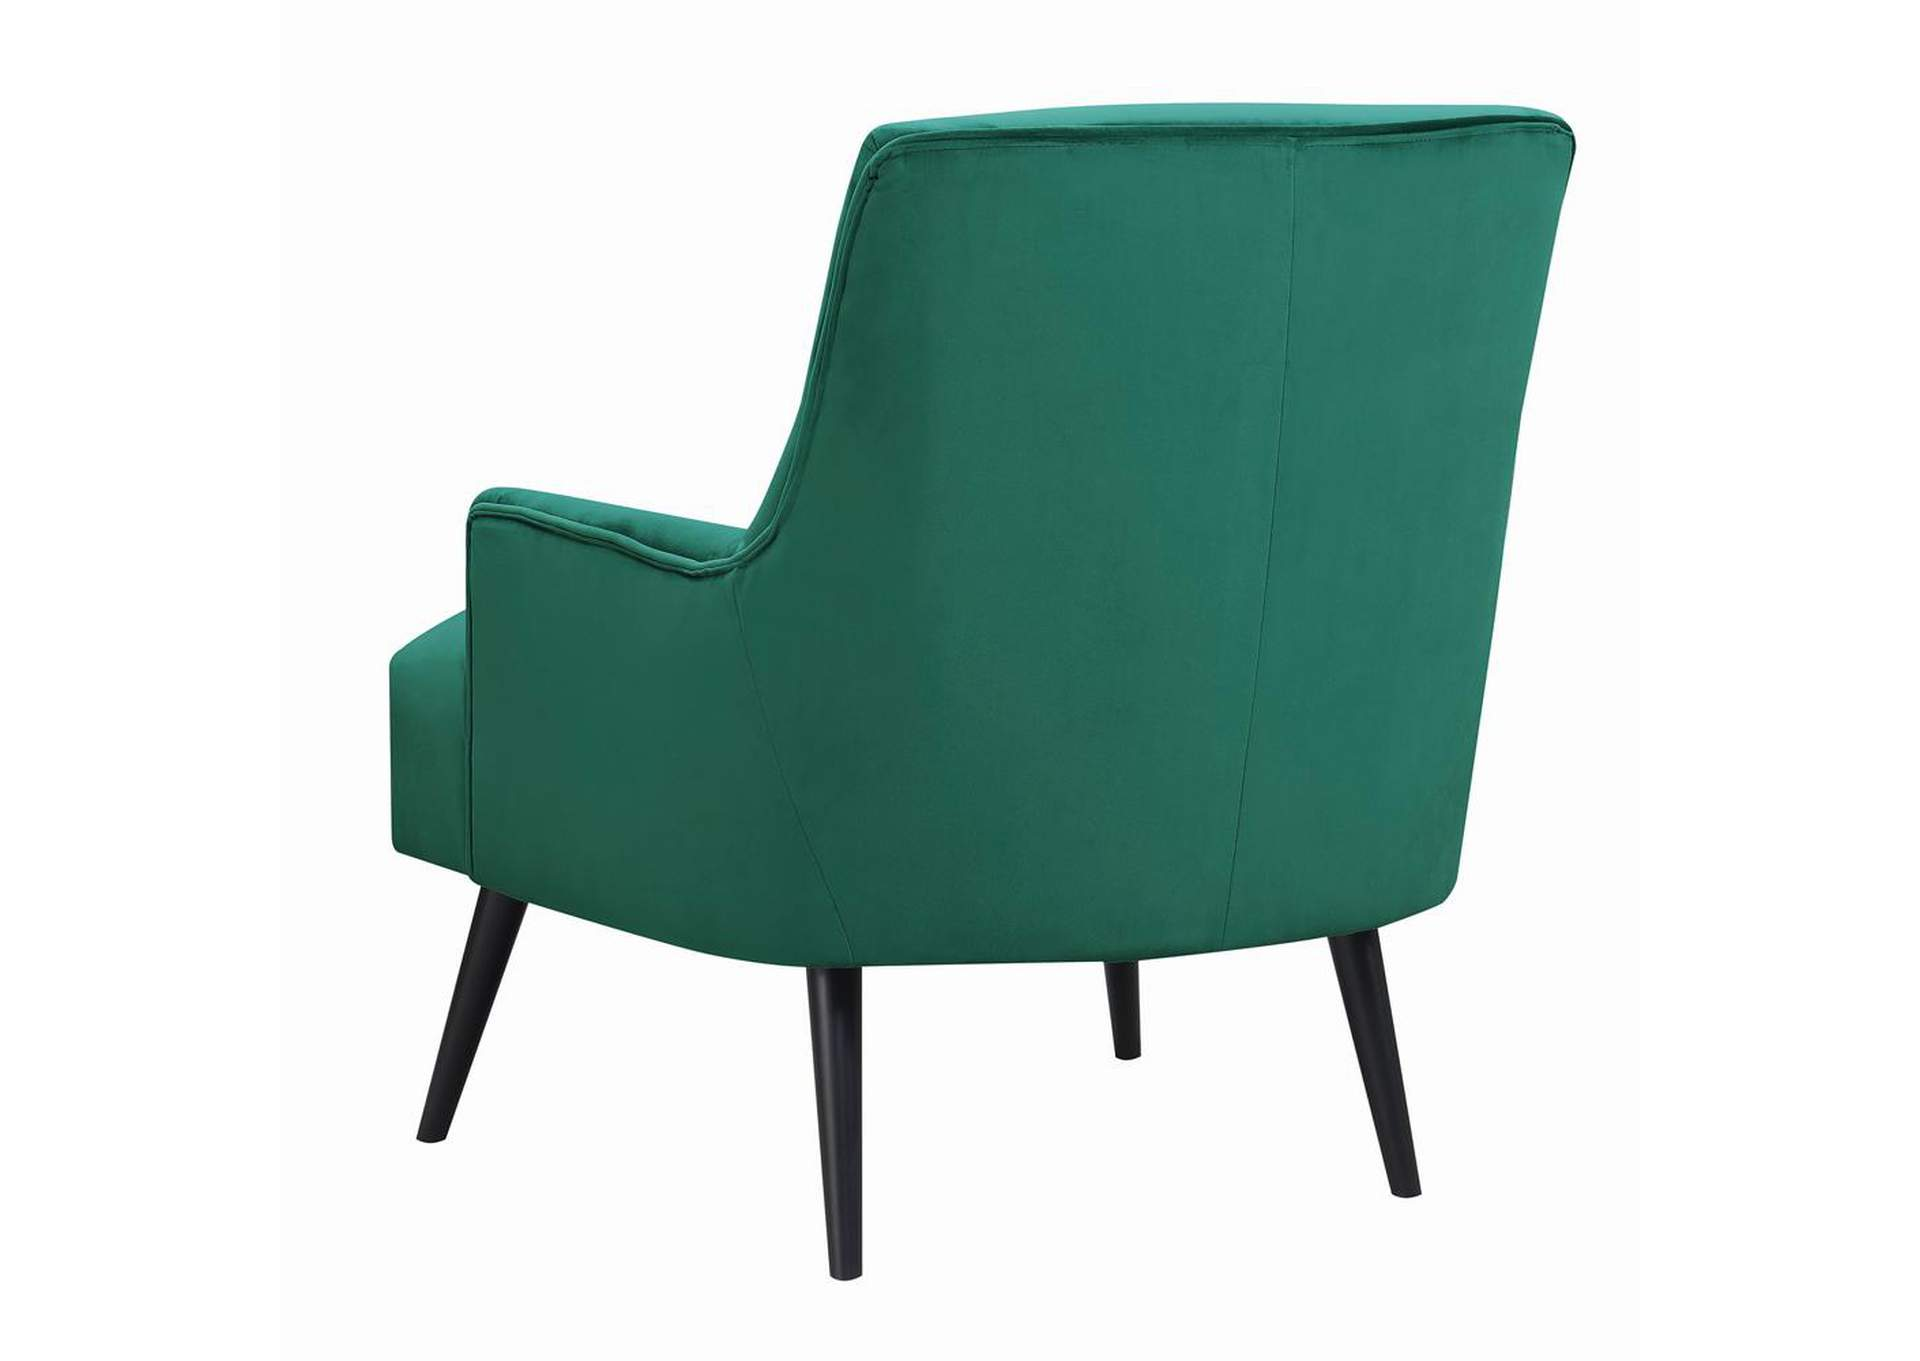 Paradiso Mid-Century Modern Green Accent Chair,Coaster Furniture